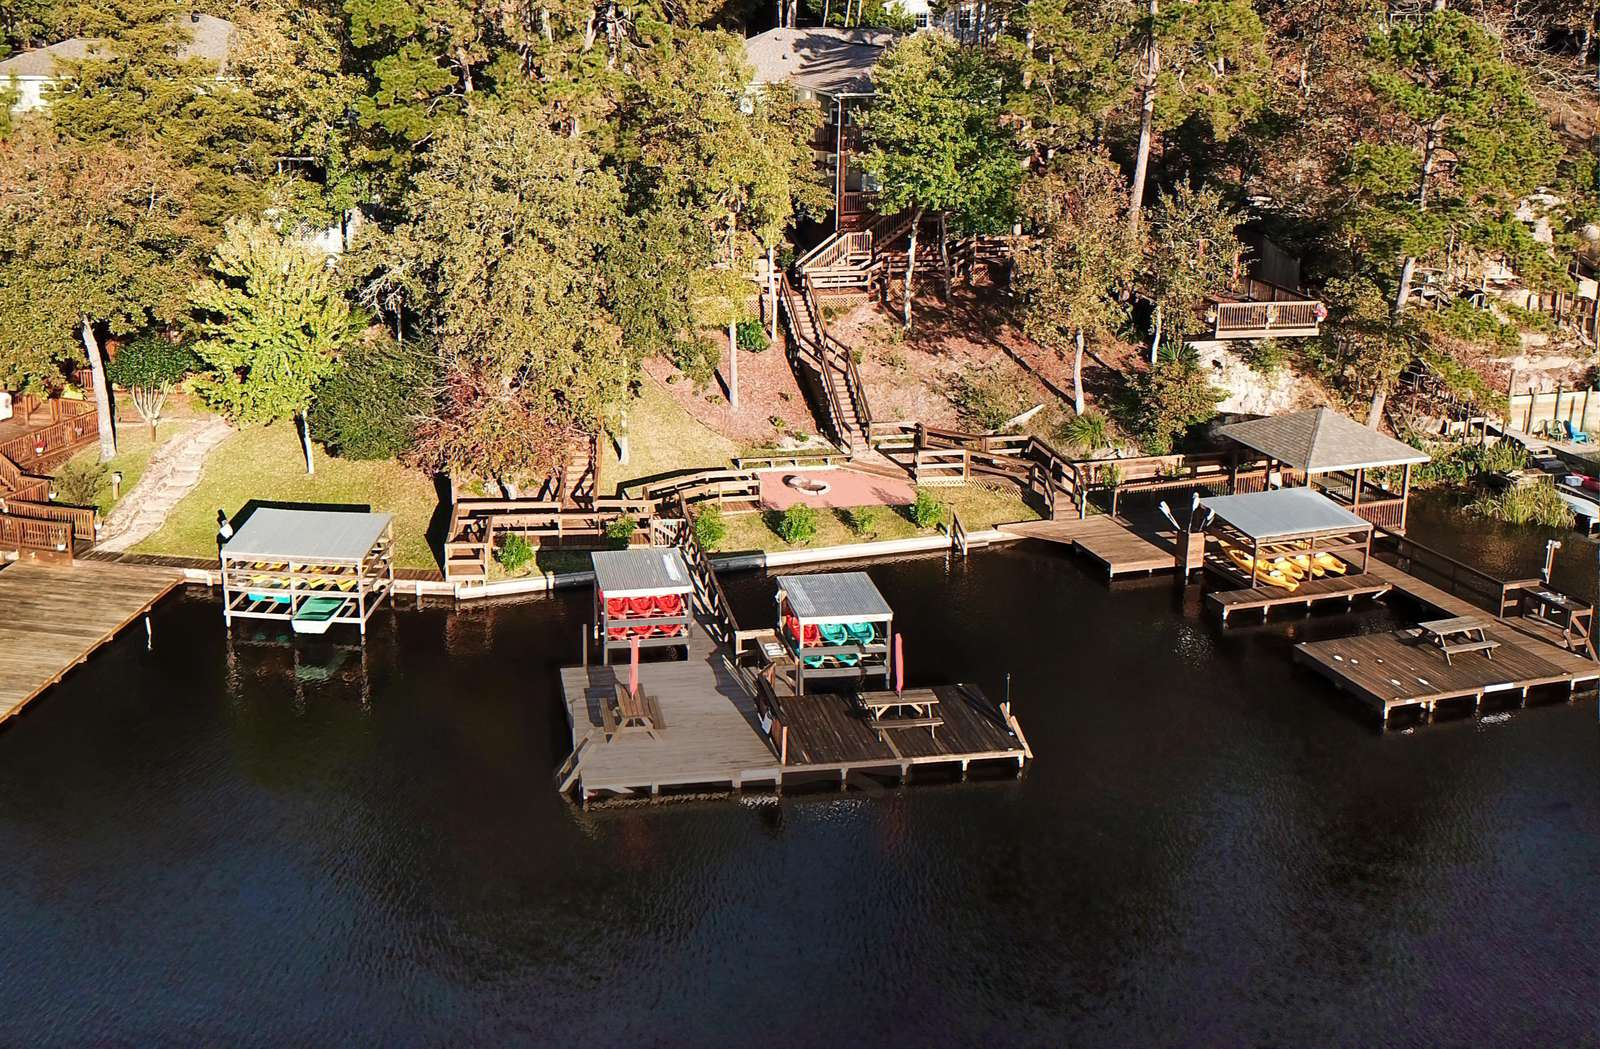 The right side of the center dock is for use by The Gregory's guests.